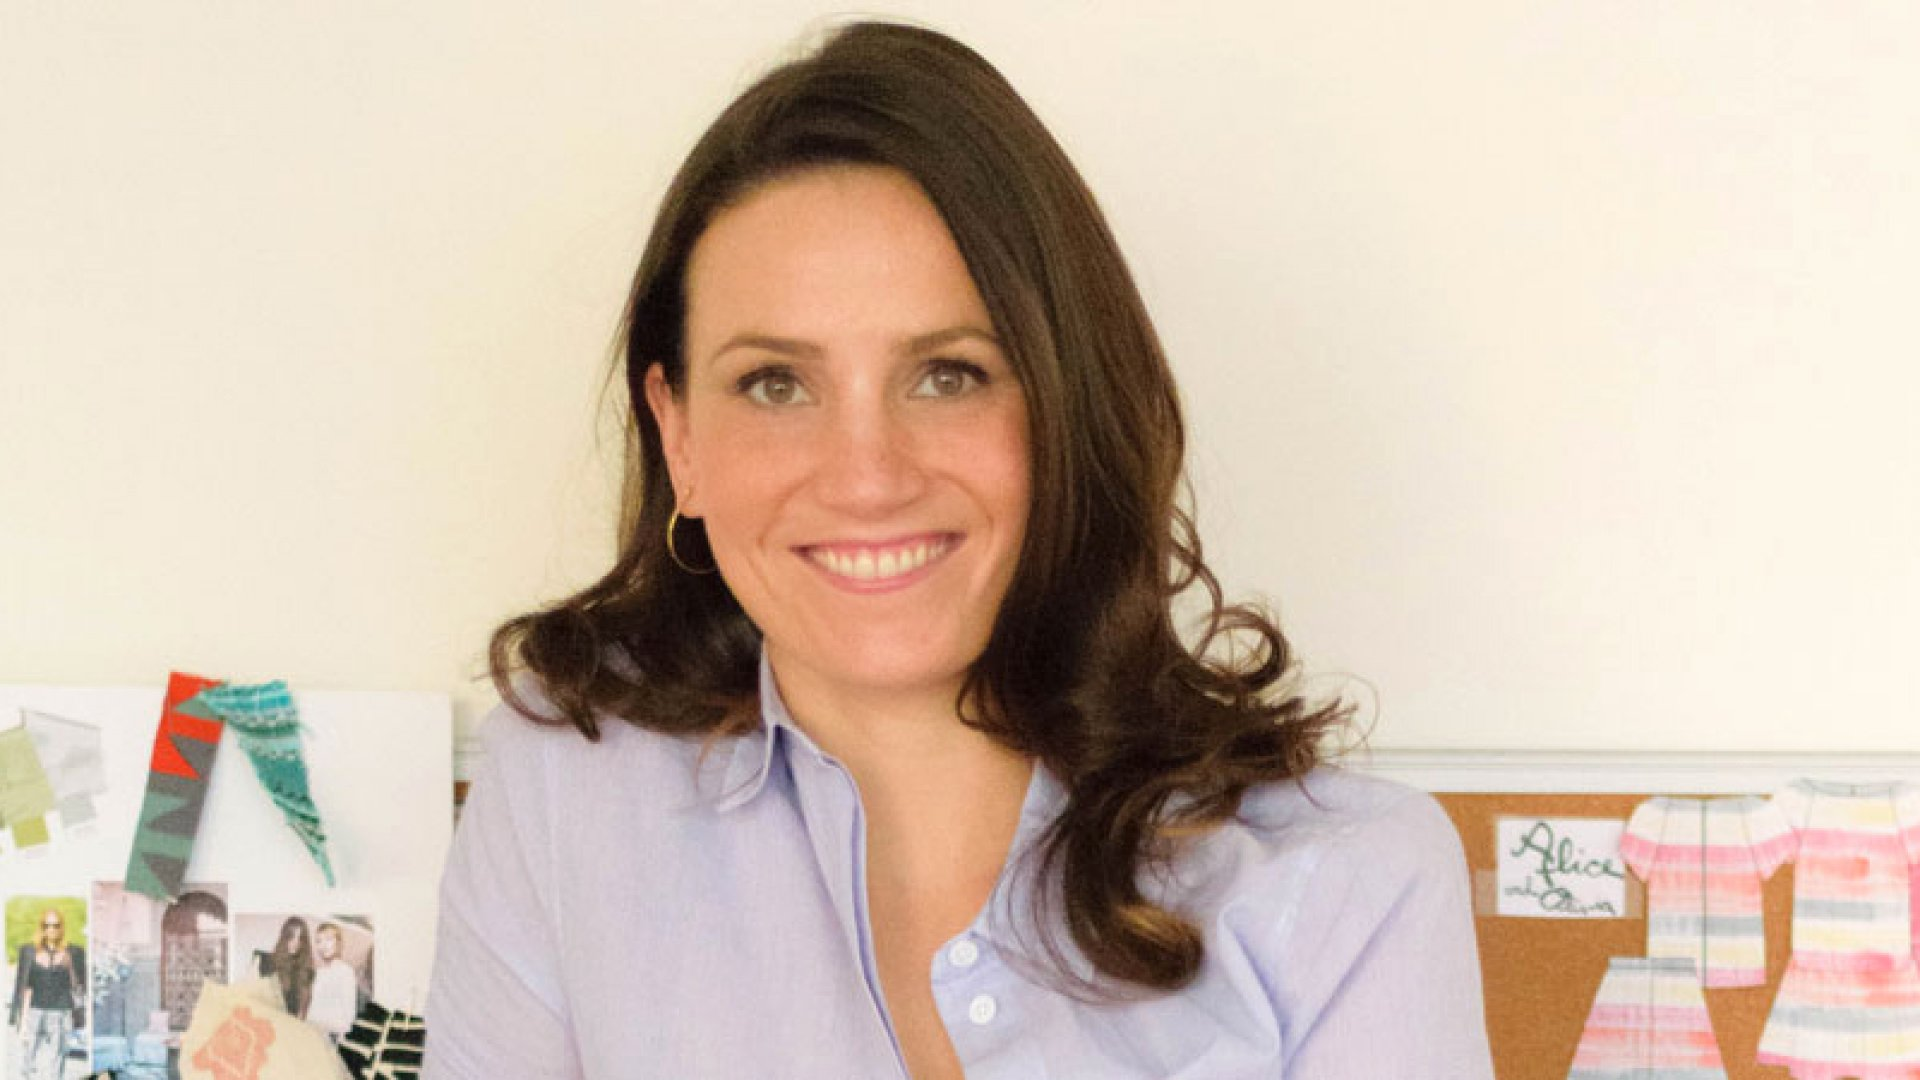 Kathleen Wright, founder and CEO, Piece & Co.